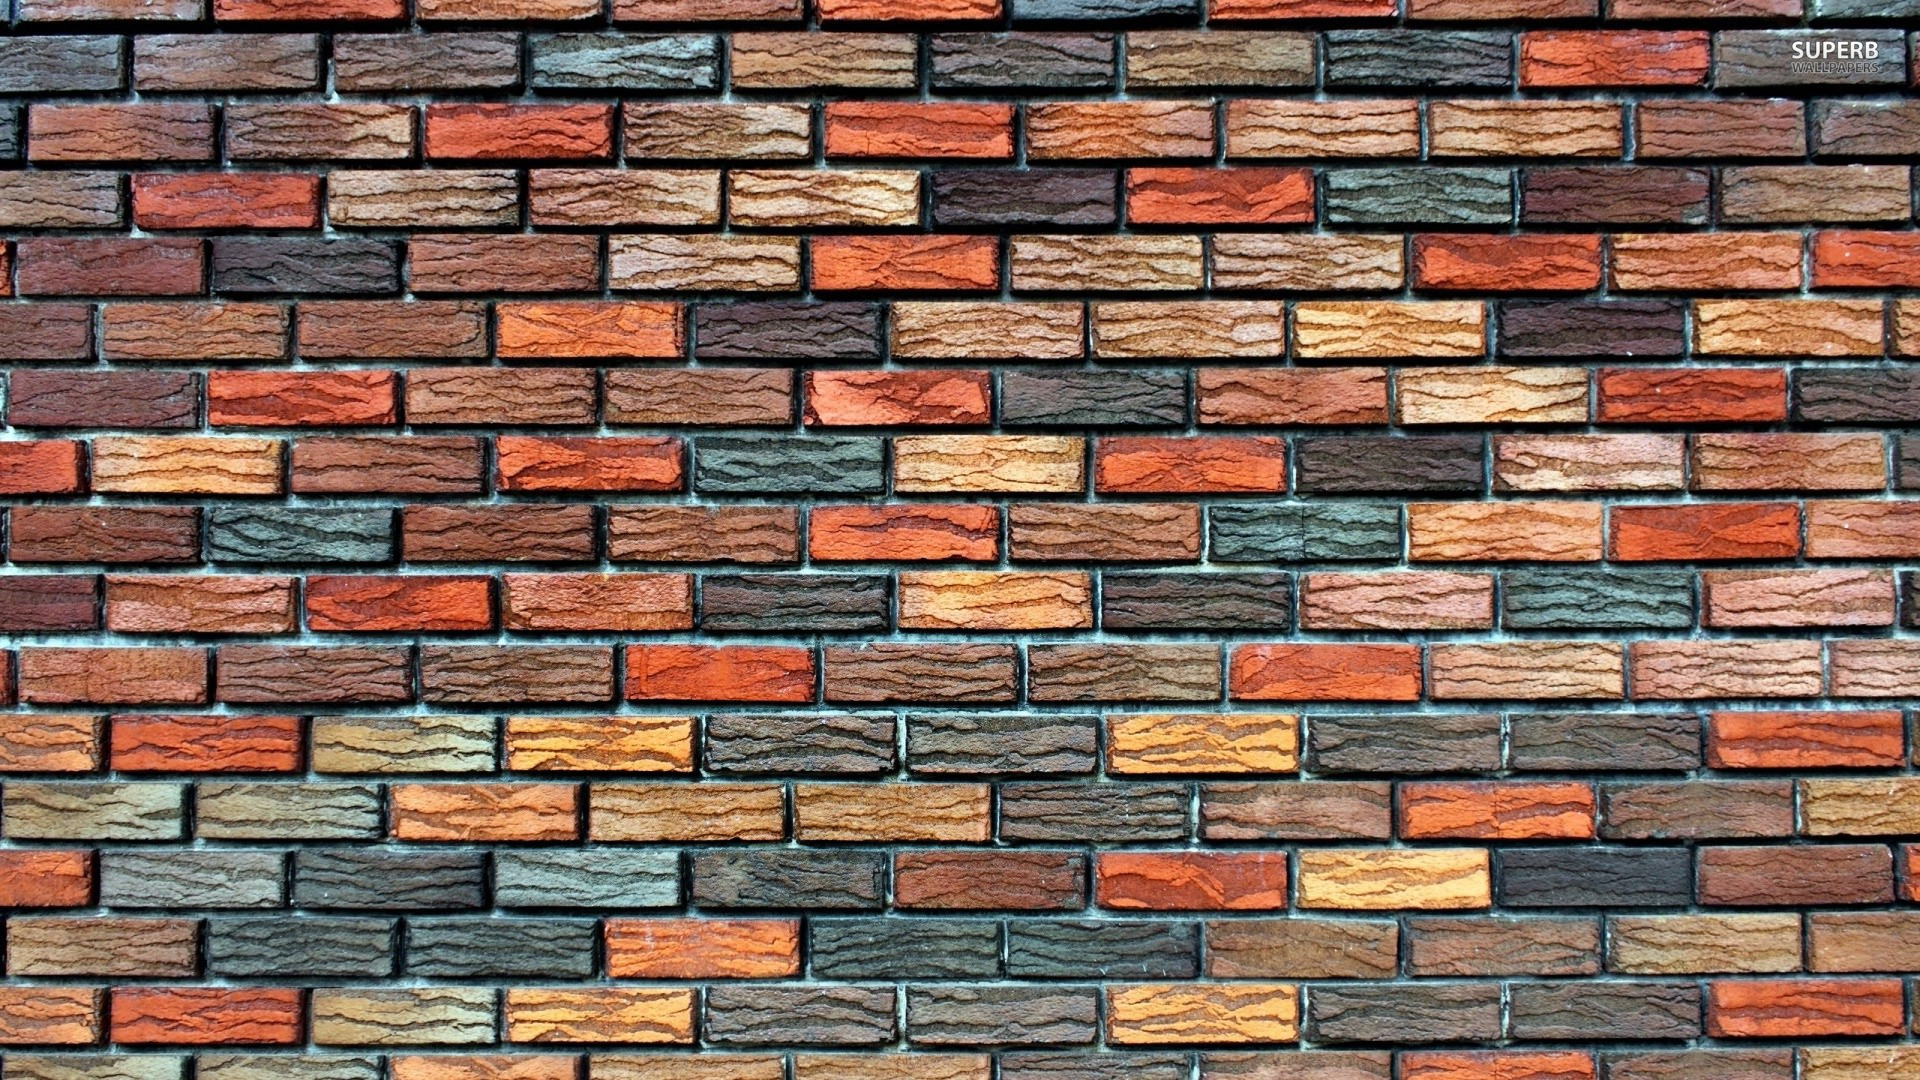 Brick Wallpaper Download Free Cool Backgrounds For Desktop And